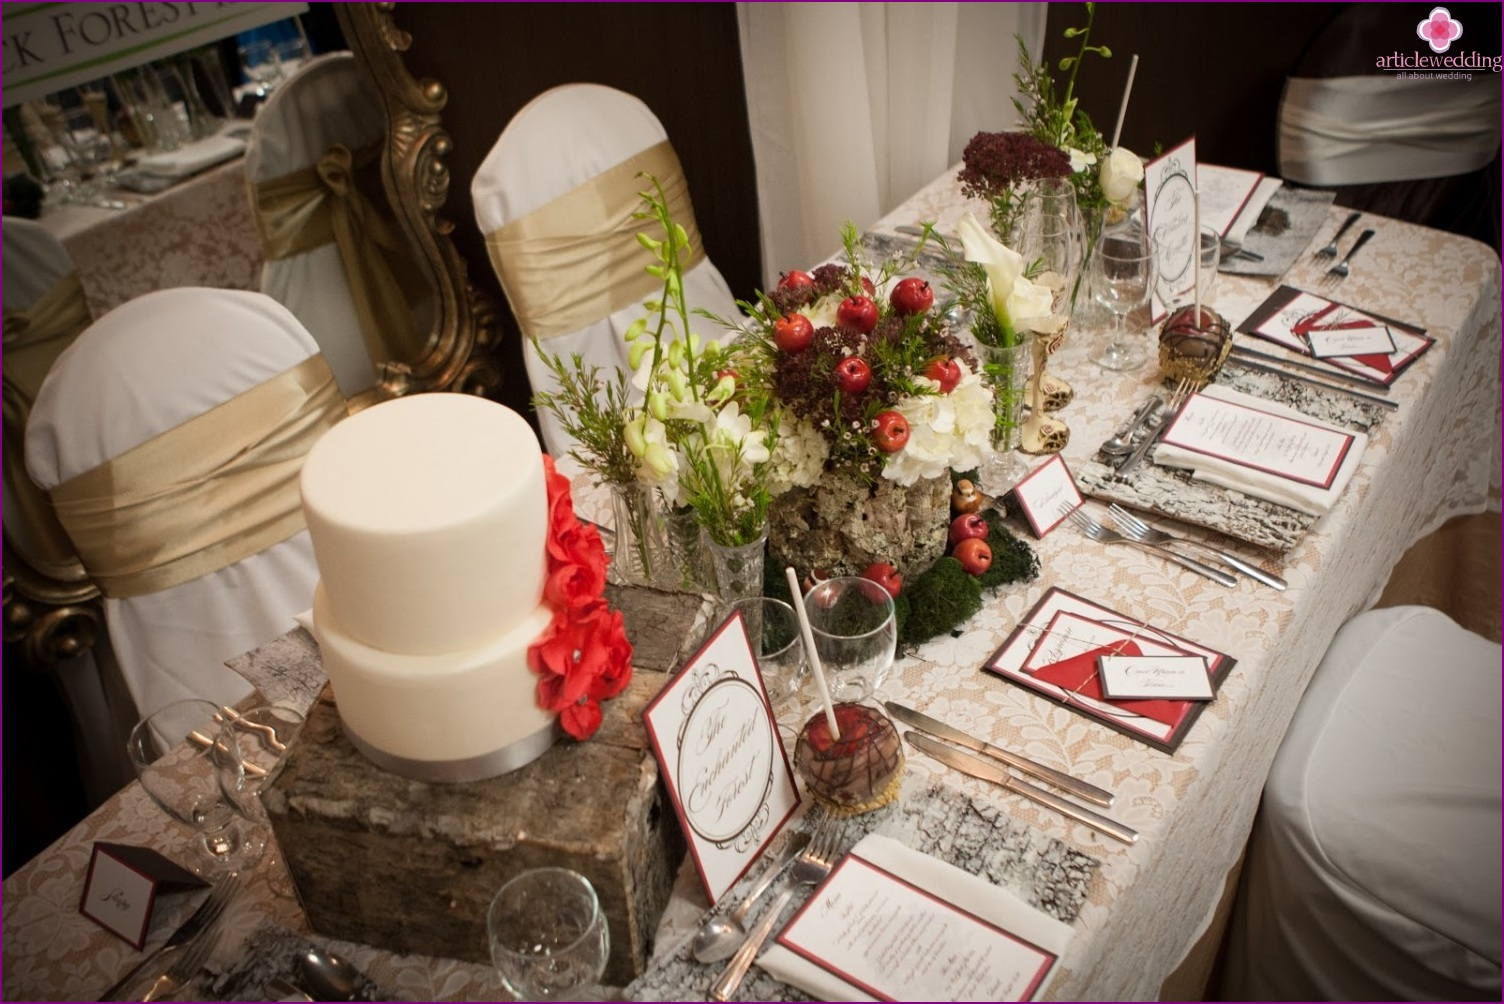 Table decor in the style of